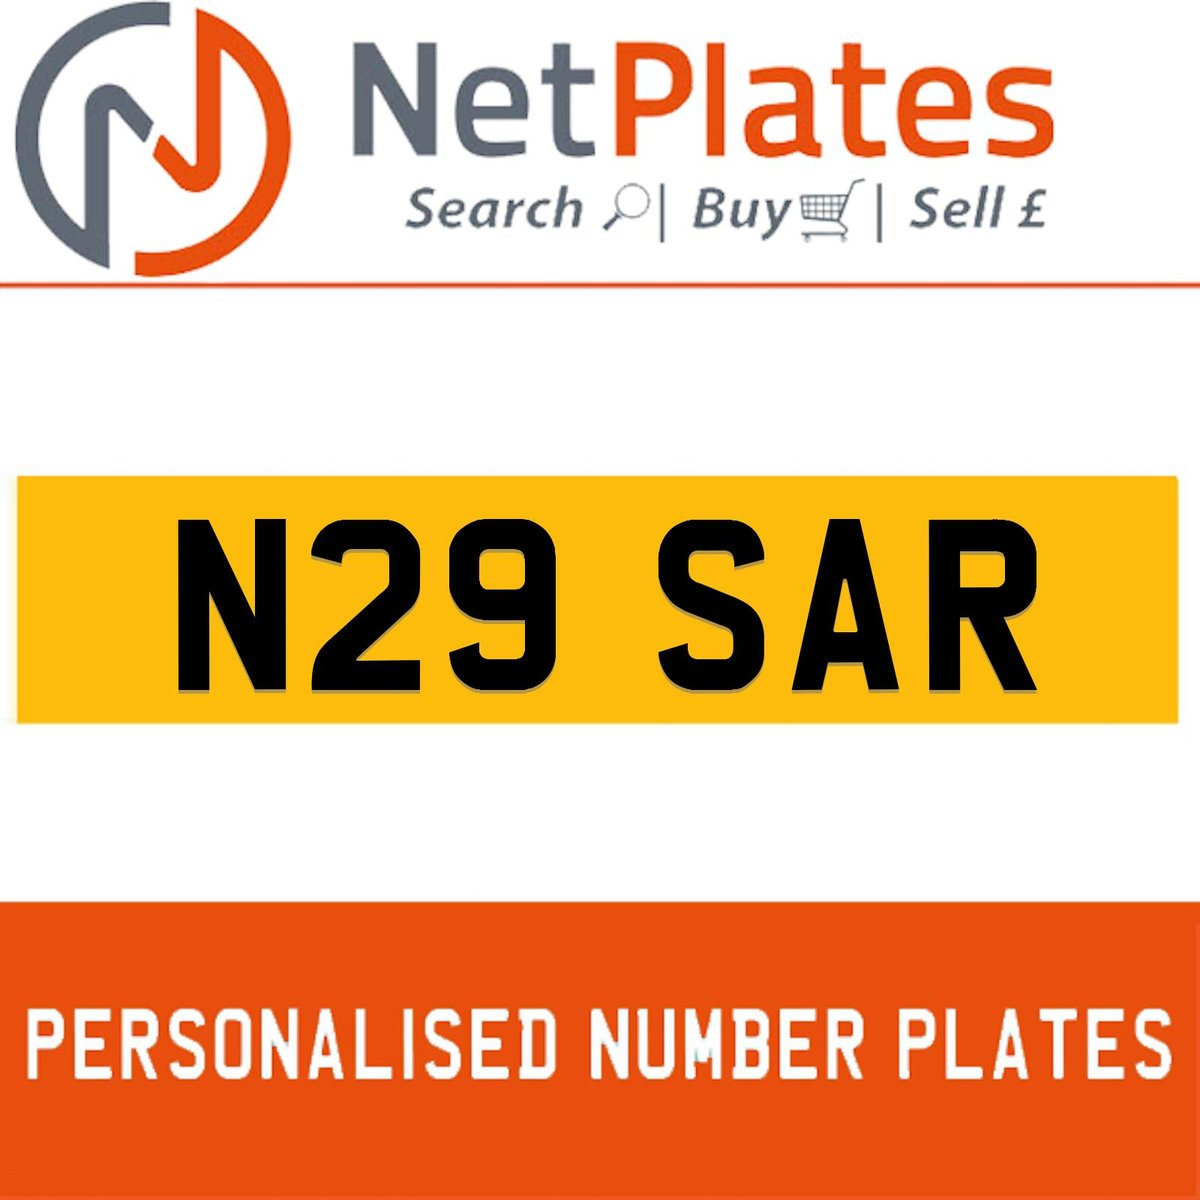 N29 SAR PERSONALISED PRIVATE CHERISHED DVLA NUMBER PLATE For Sale (picture 1 of 5)